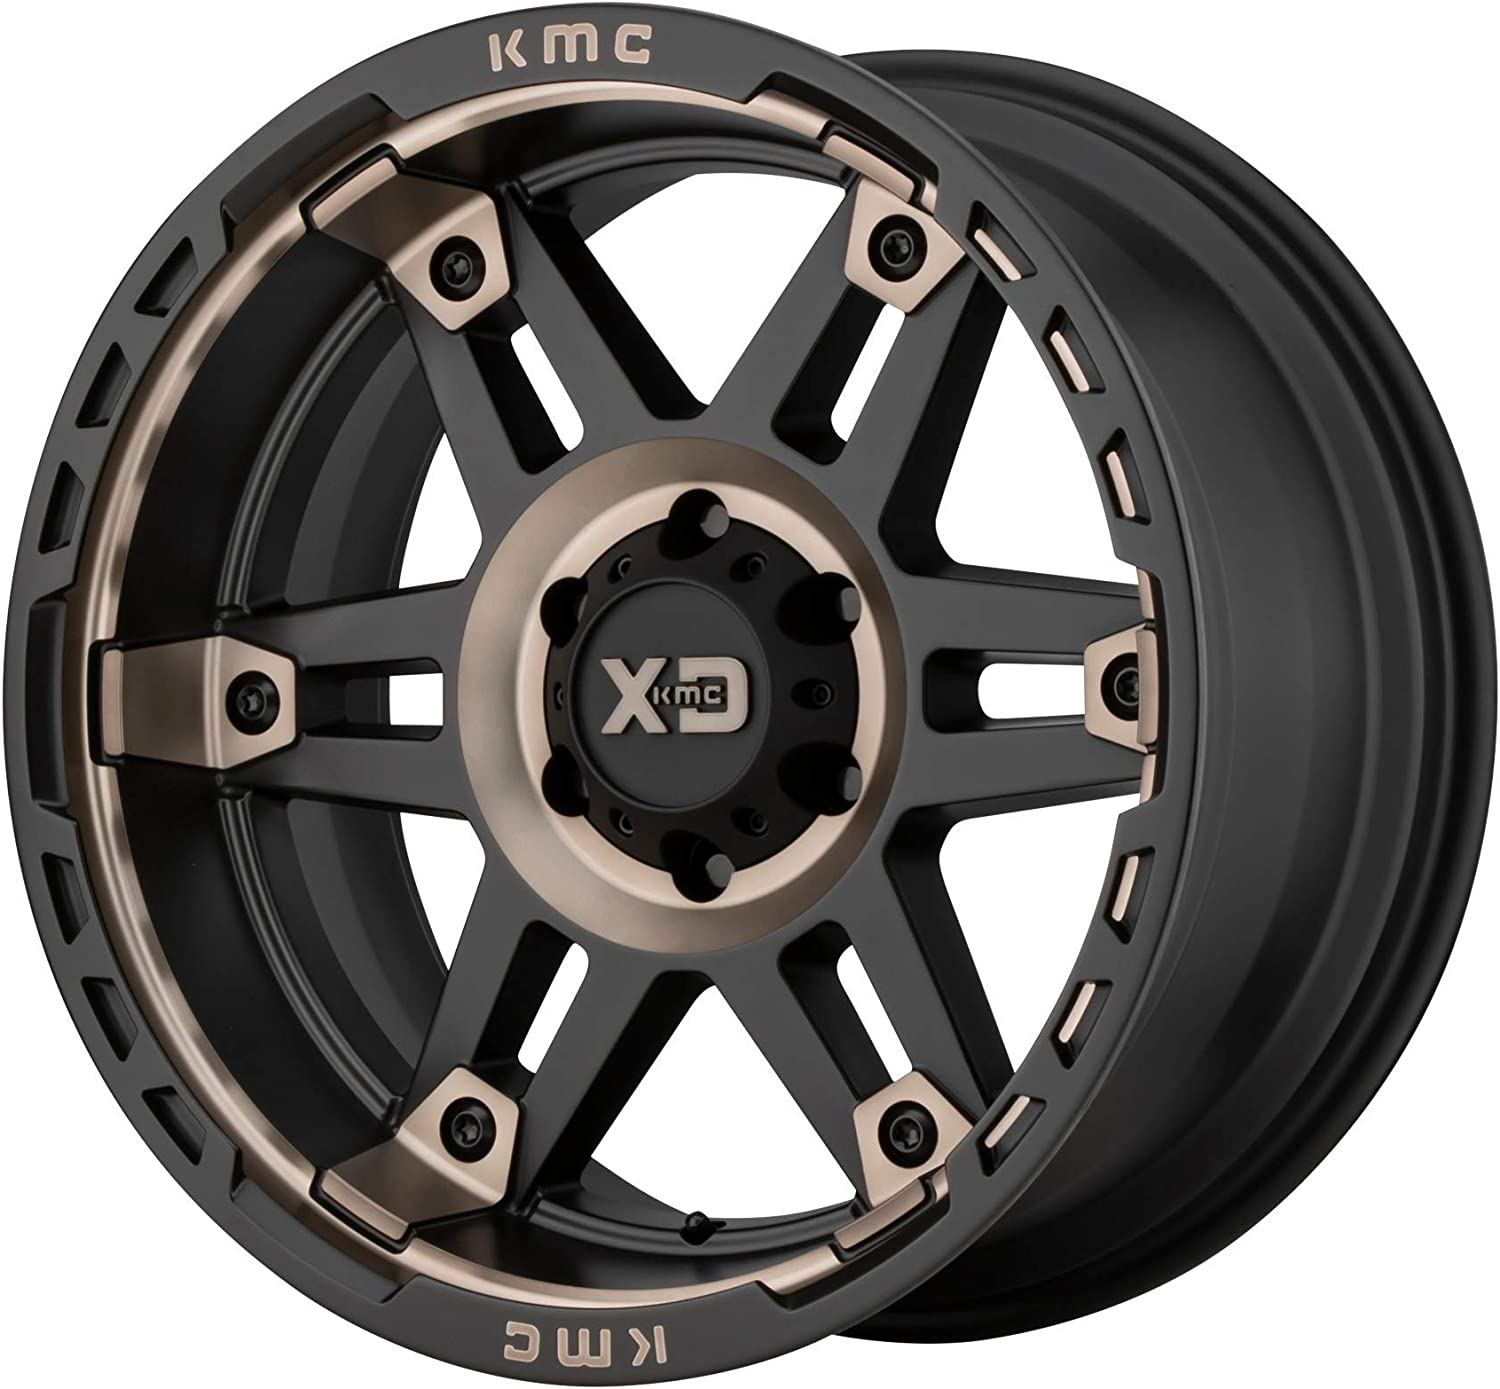 Deal Max 65% OFF on online shop Wheels XD840 20X10 6X135 Accessory -18MM AUTO DTCC S-BLK